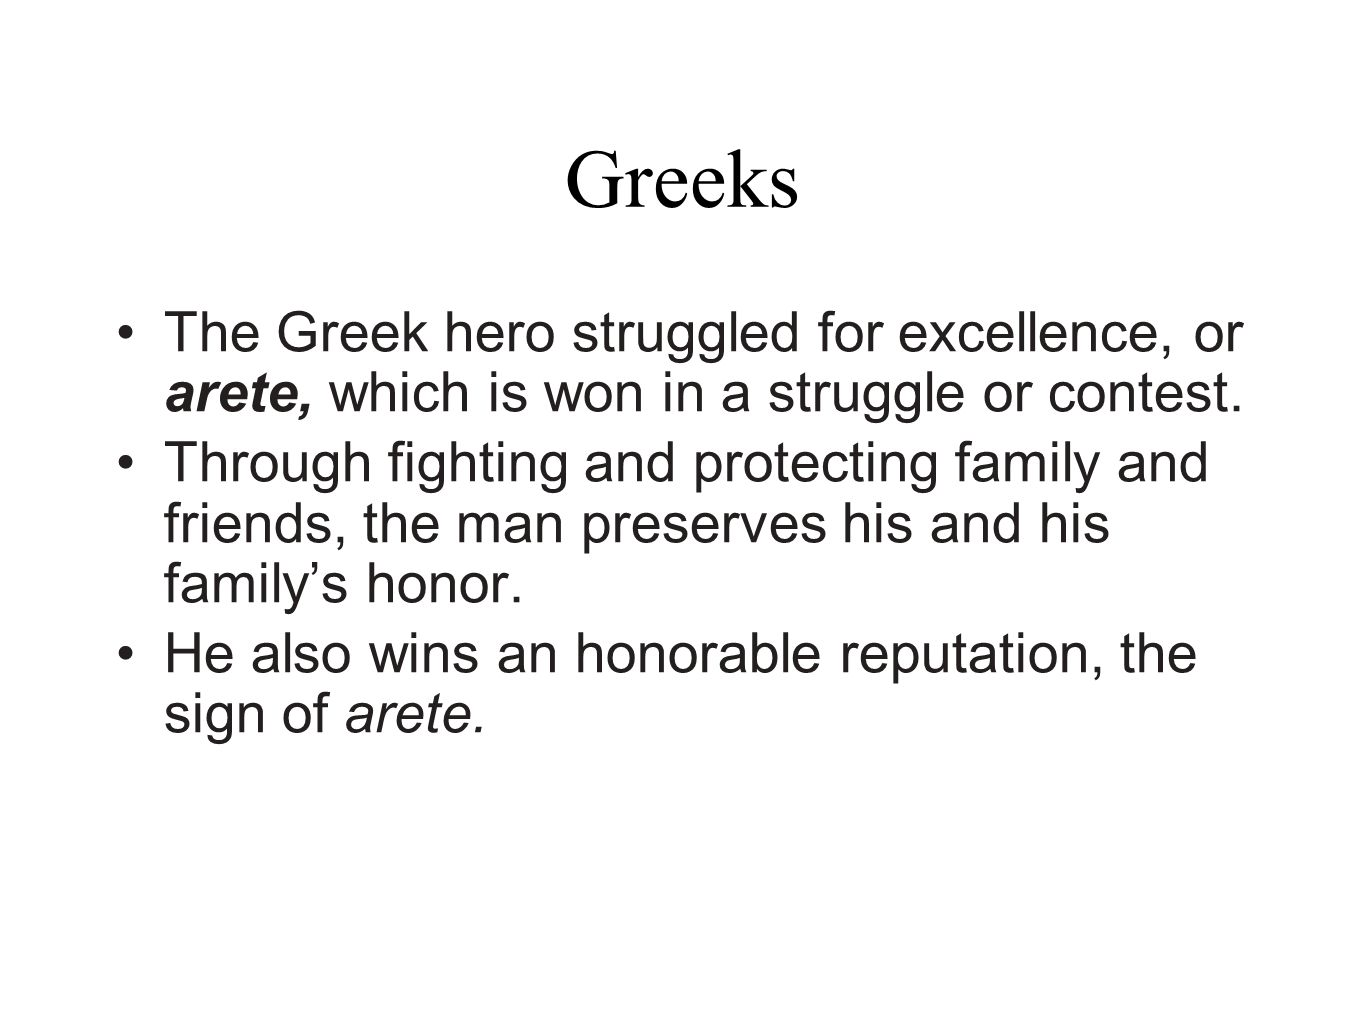 Greeks The Greek hero struggled for excellence, or arete, which is won in a struggle or contest.